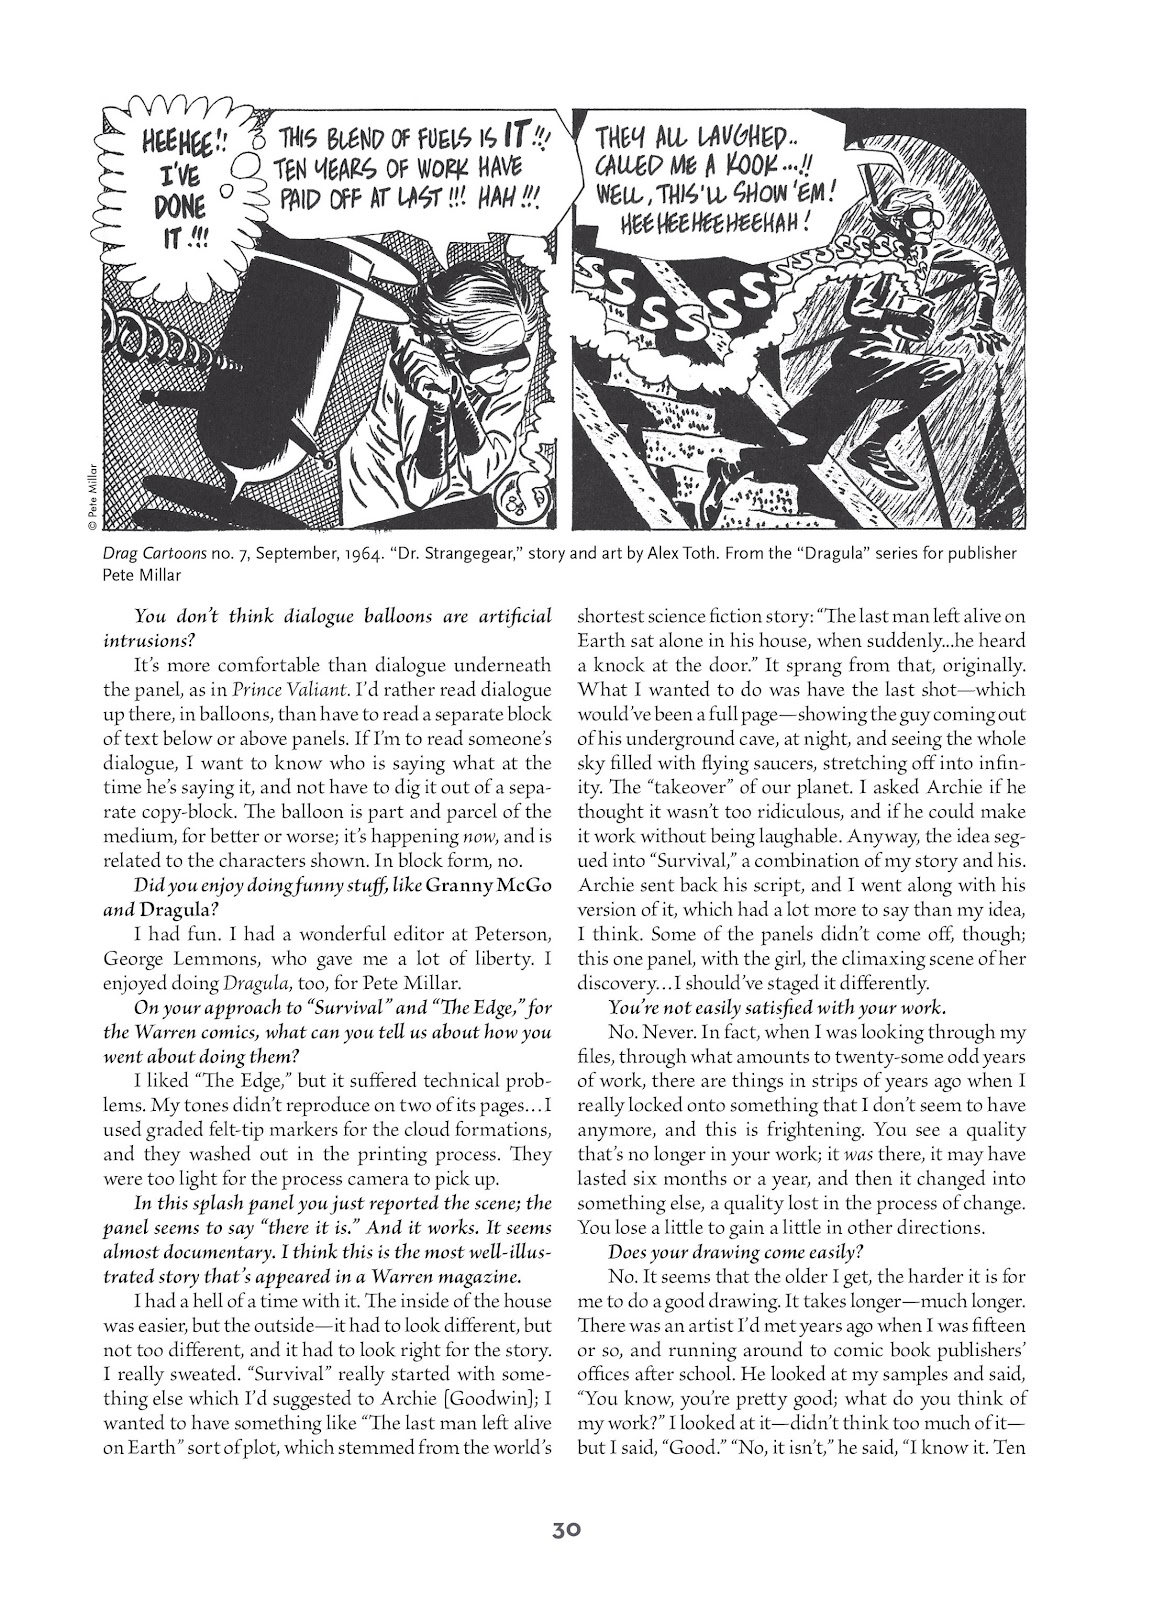 Read online Setting the Standard: Comics by Alex Toth 1952-1954 comic -  Issue # TPB (Part 1) - 29